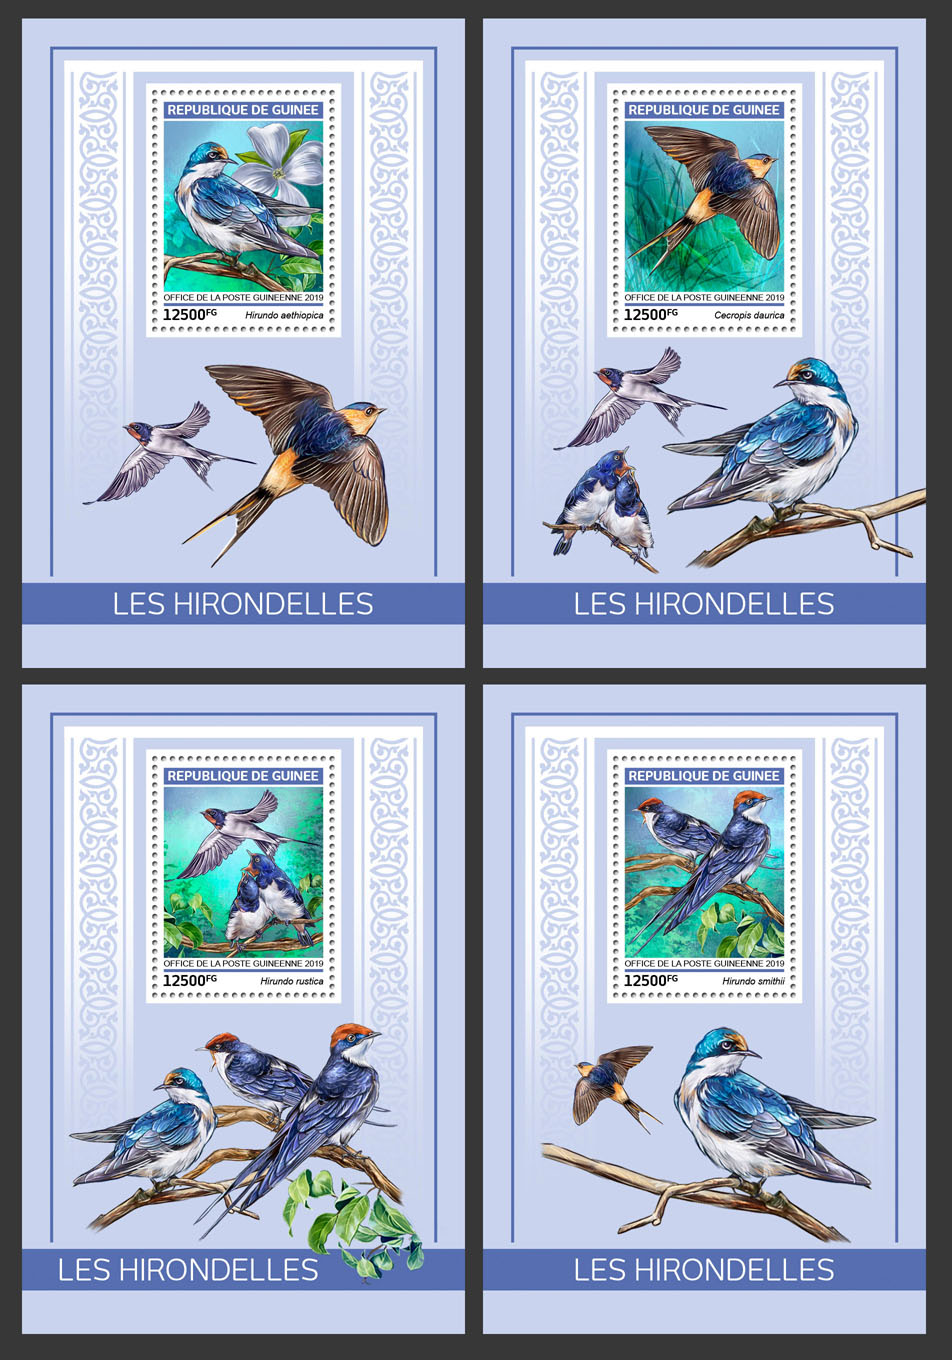 Swallows - Issue of Guinée postage stamps